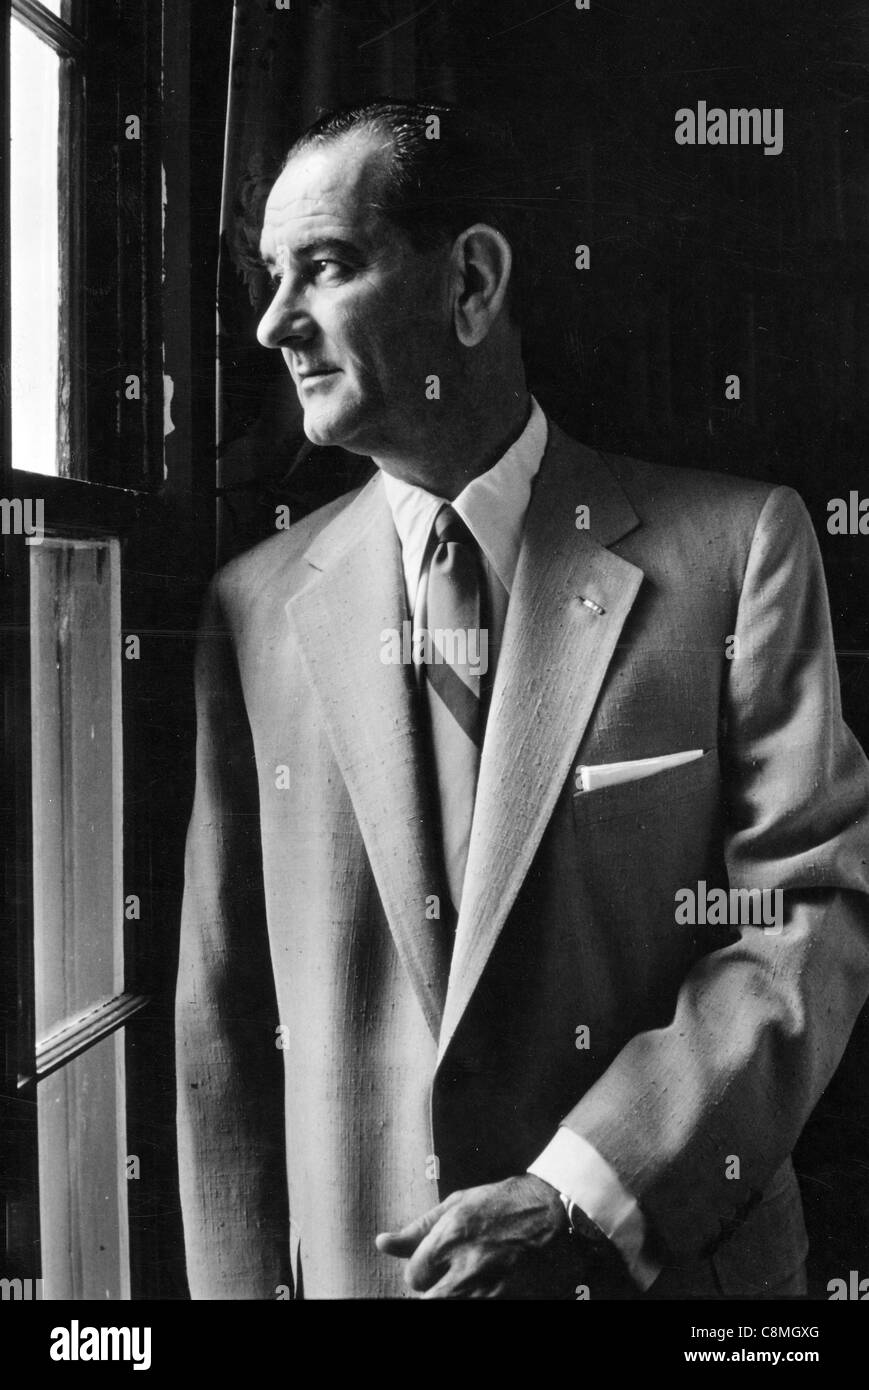 Lyndon B. Johnson was the 36th President of the United States - Stock Image